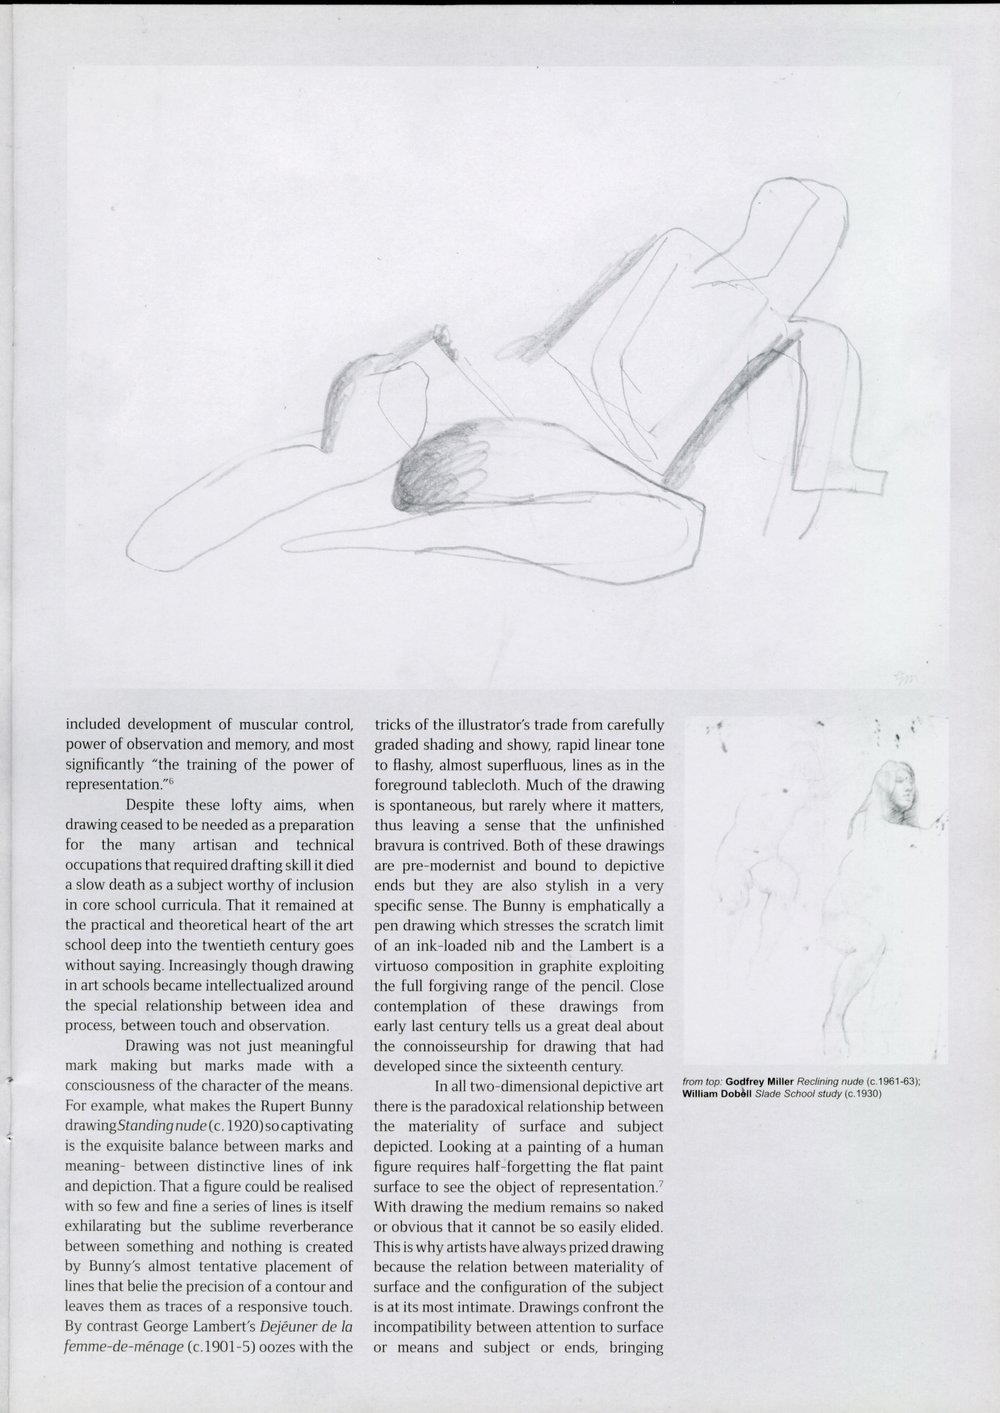 DrawingCentre-essay (1)_Page_3.jpg